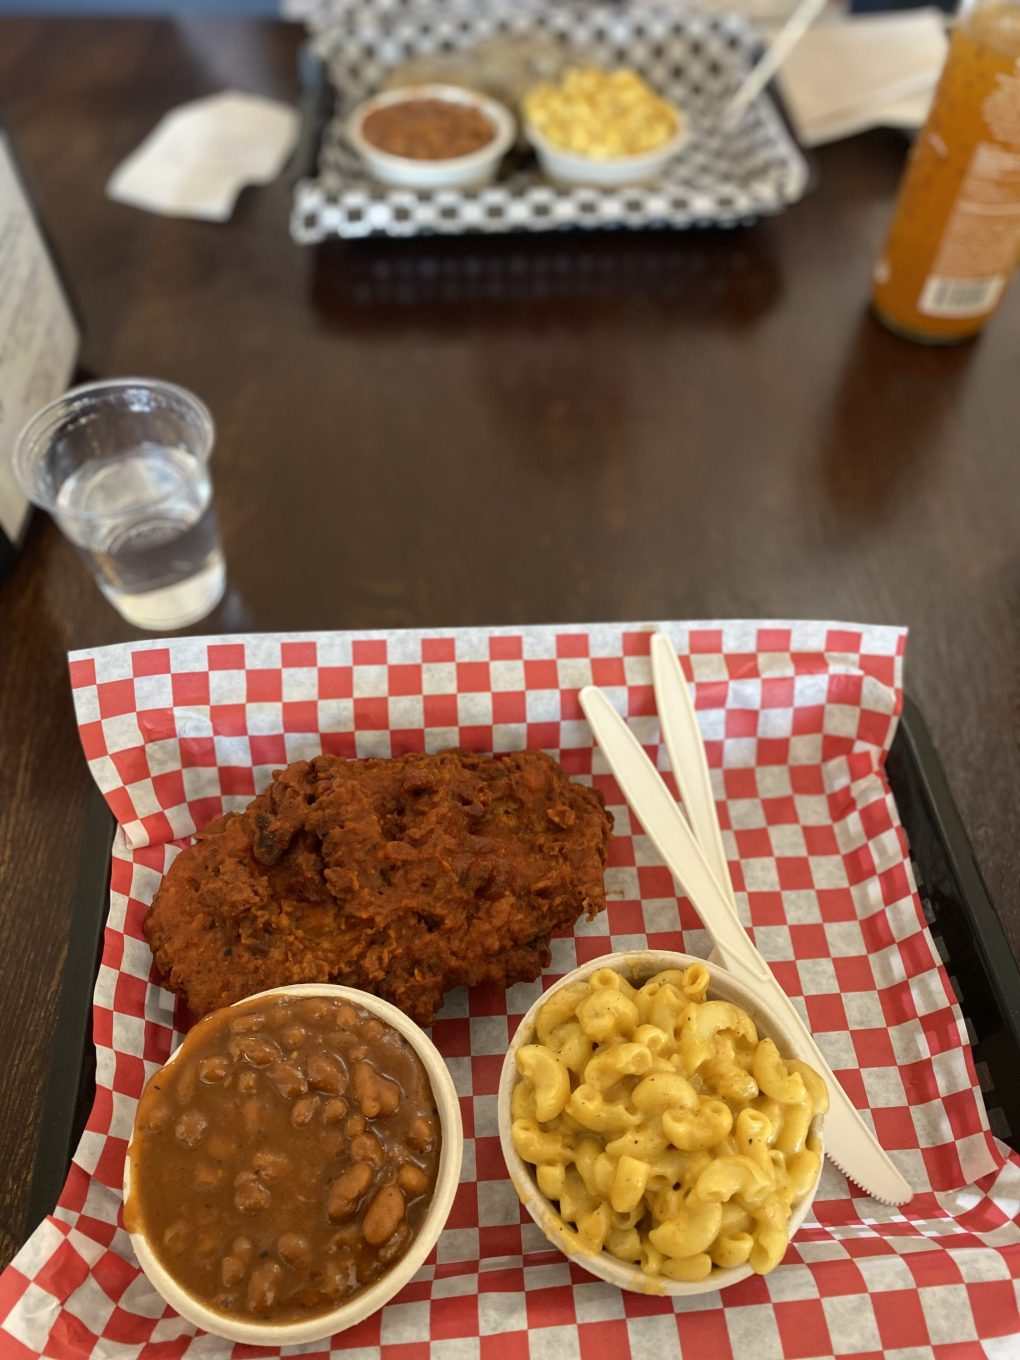 Nashville Hot Chick'n from The Southern V, with baked beans and mac 'n cheese